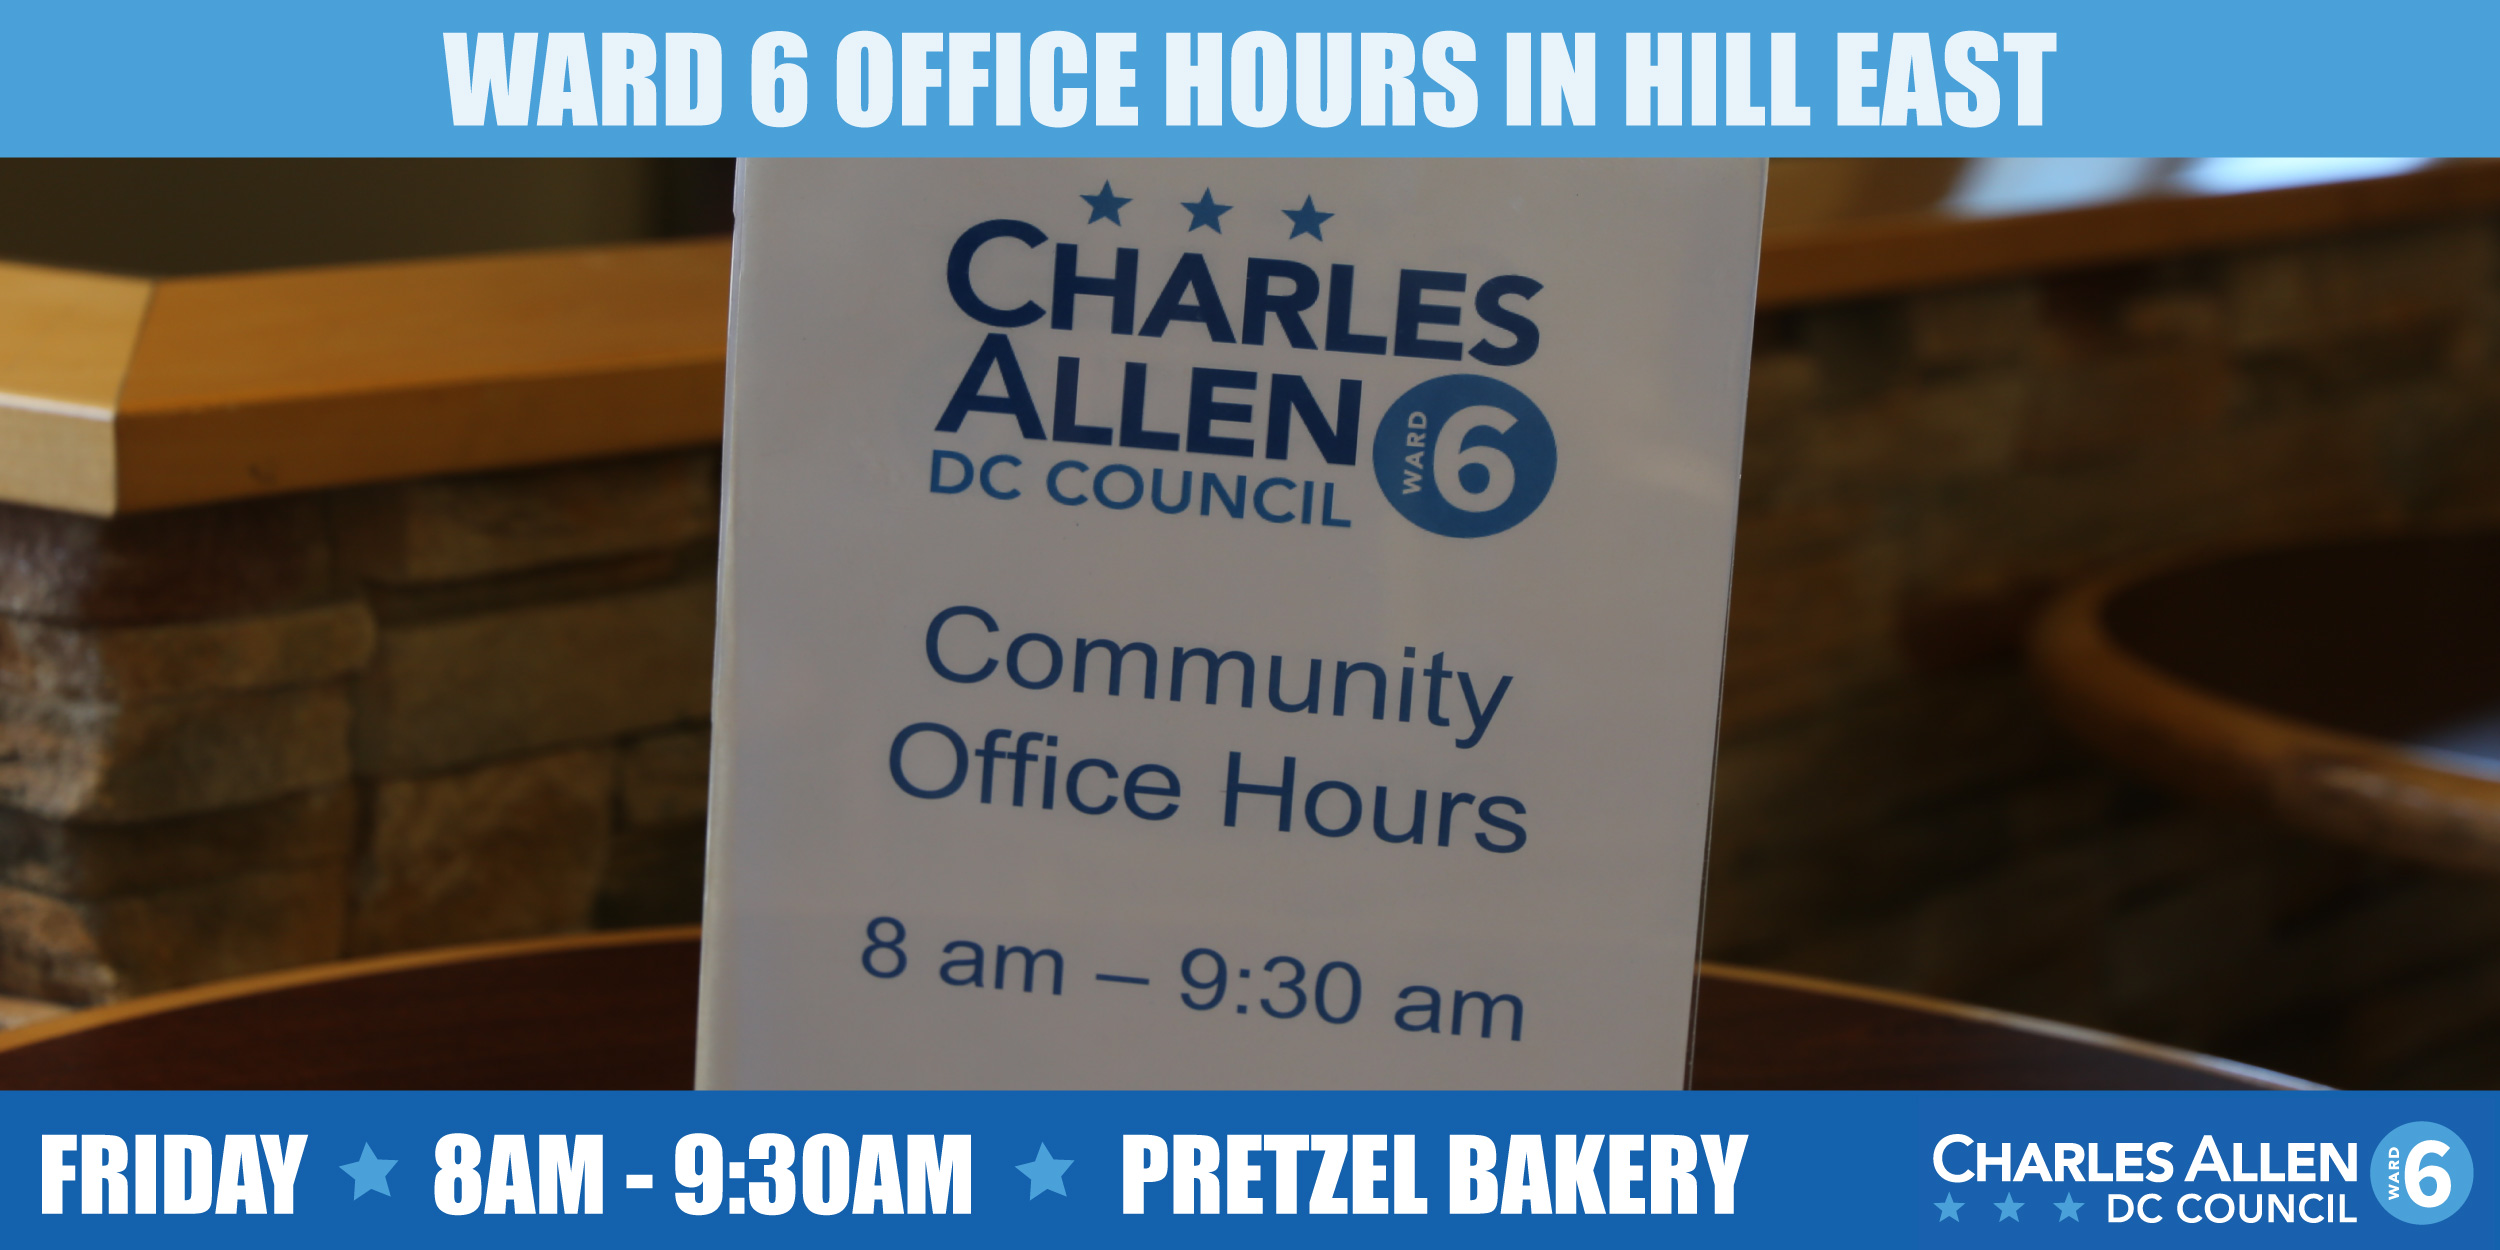 Hill-East-Office-Hours-Pretzel-Bakery.jpg